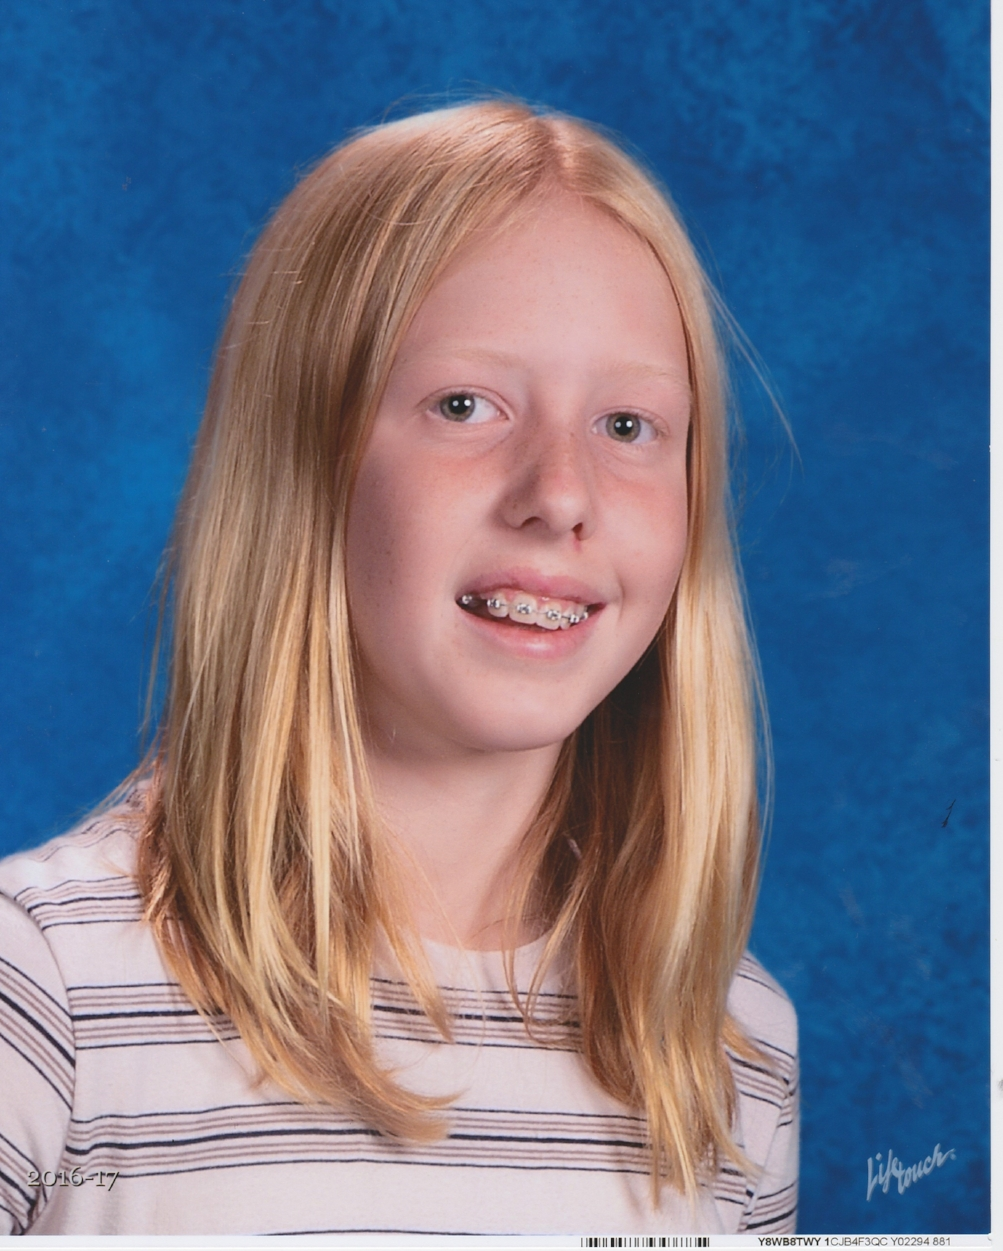 My name is Maddie Ward and I am an incoming freshman at La Jolla High School. I am in Girl Scouts Troop 3890 and have been since I moved to San Diego from England in 3rd Grade.